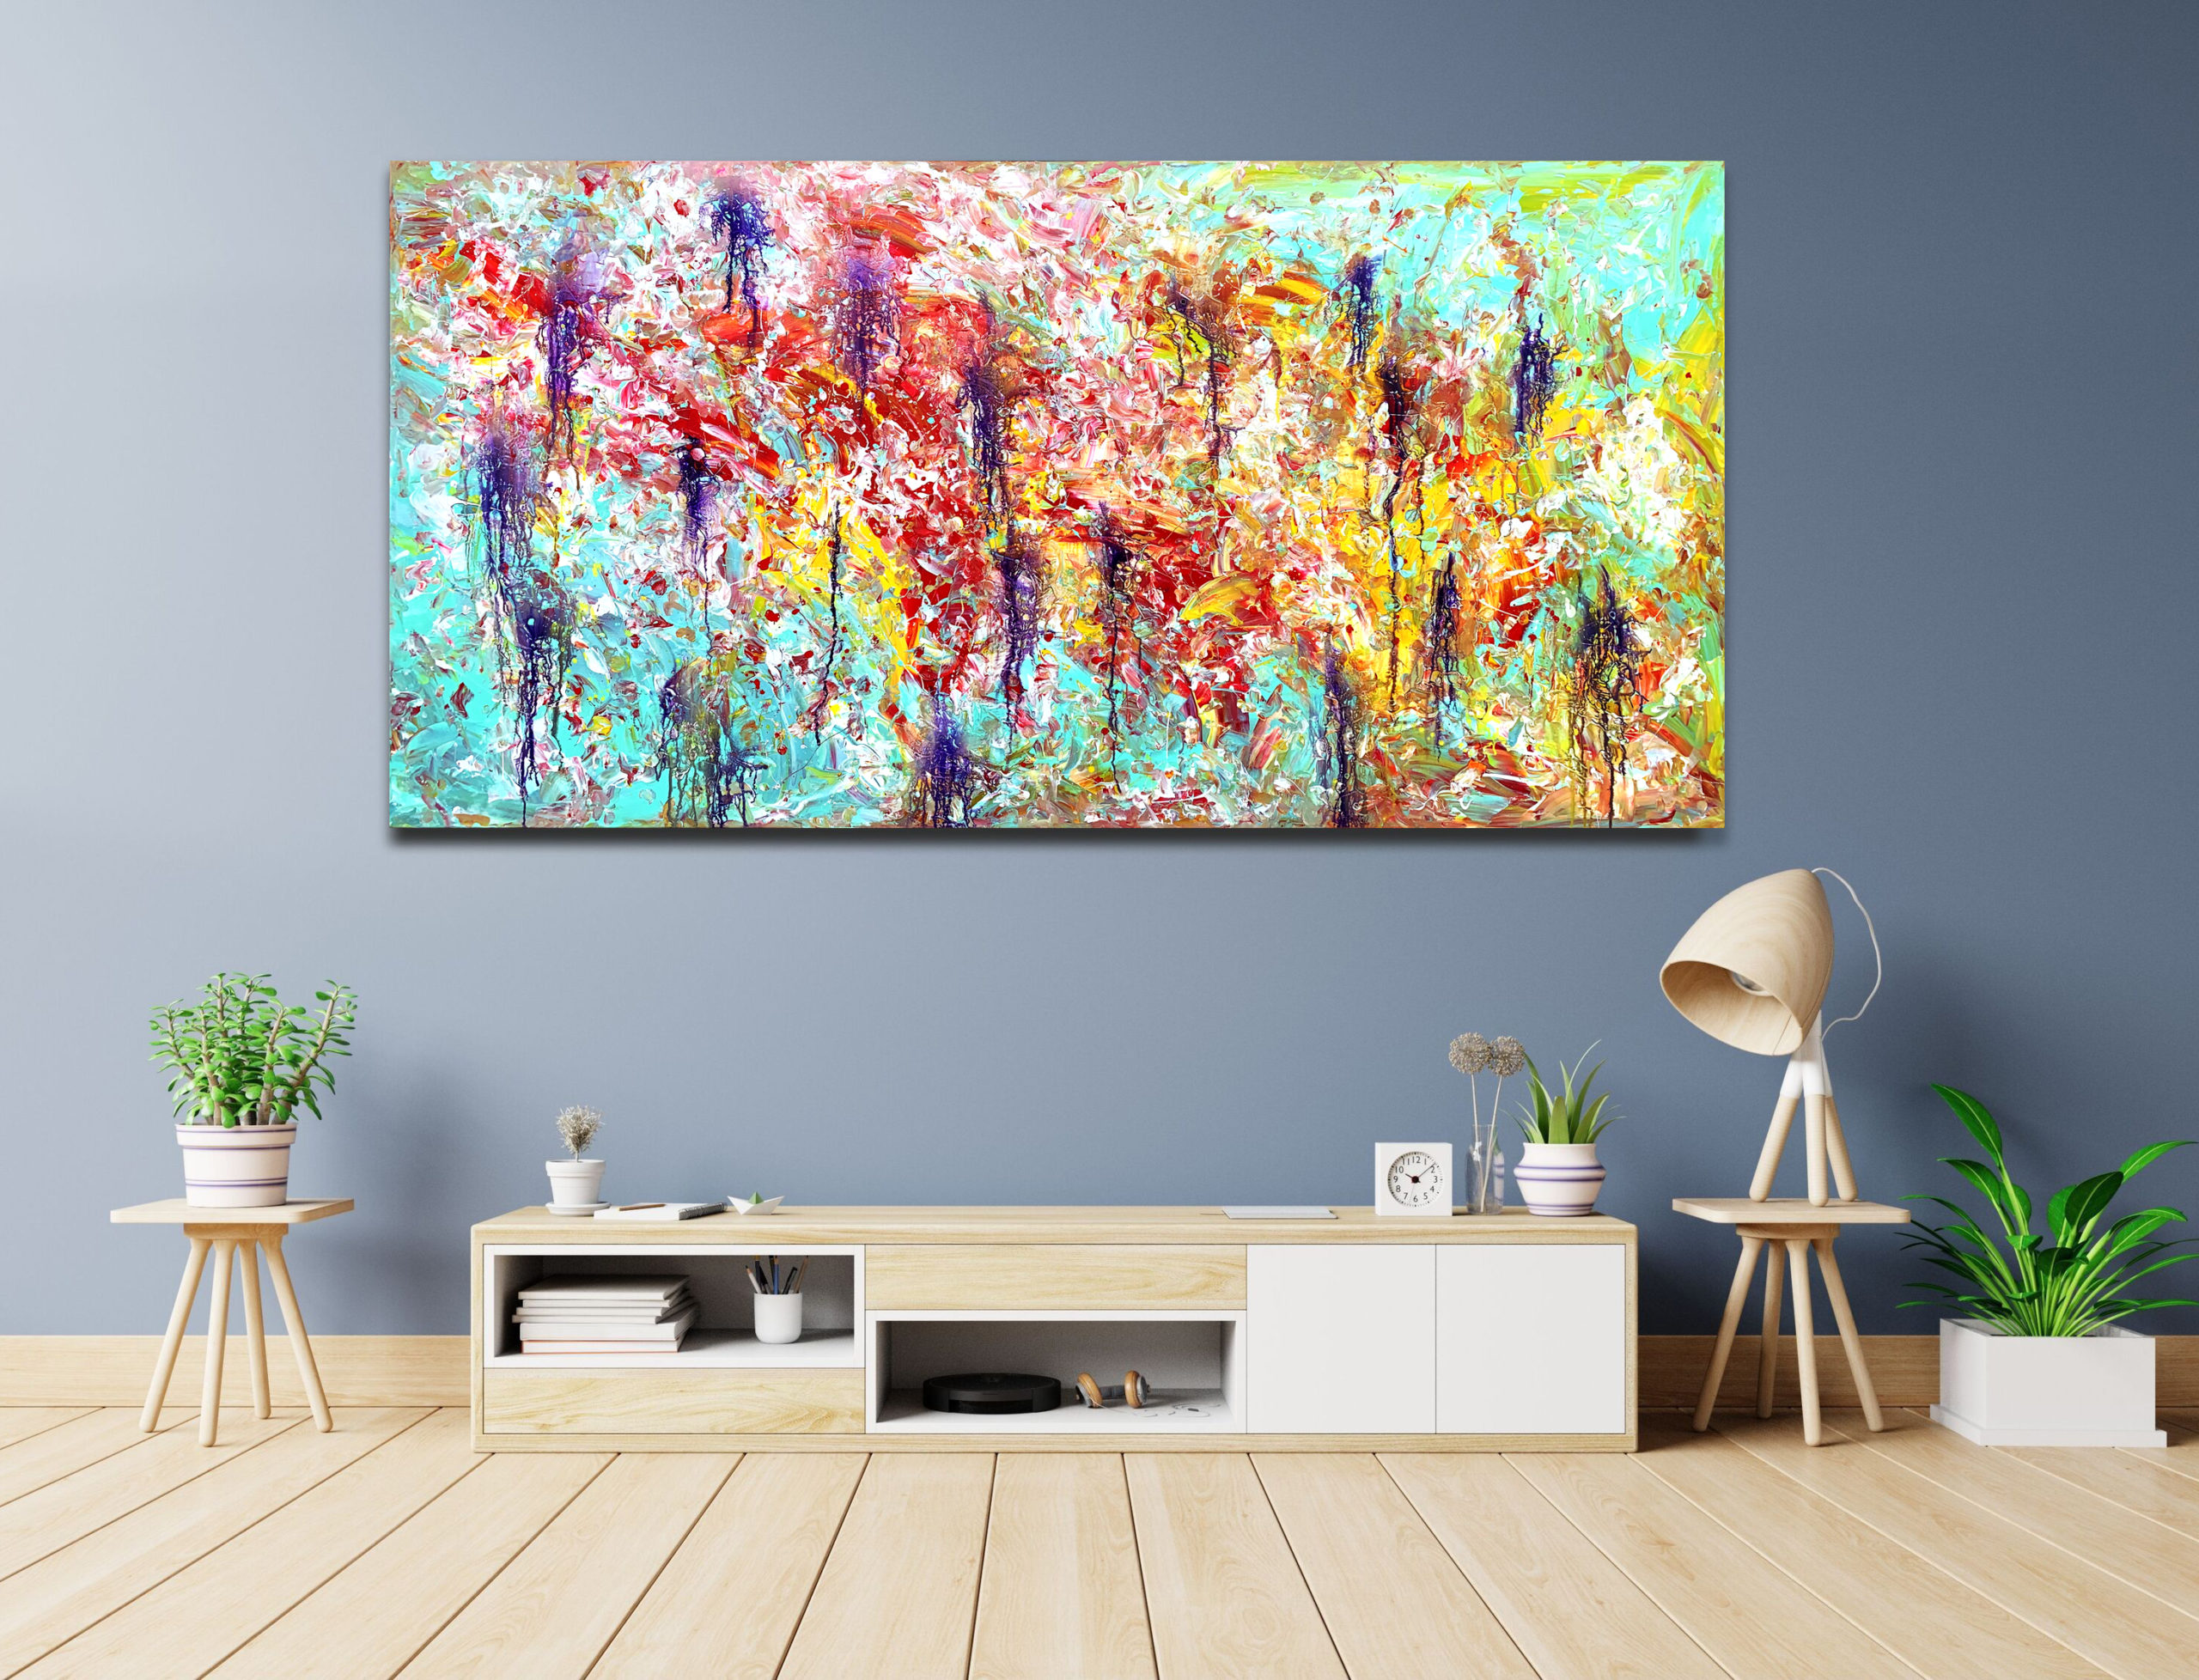 Infusing Retrospection - Abstract Expressionism by Estelle Asmodelle